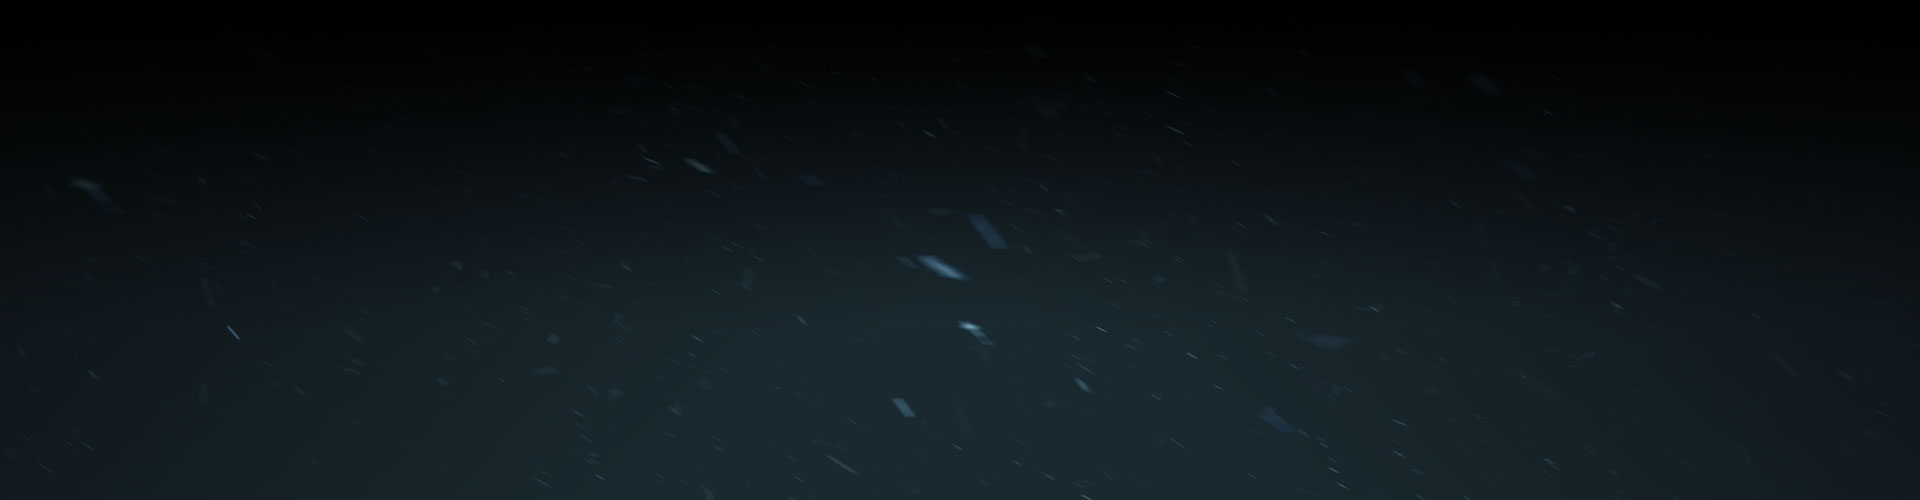 Night snow background